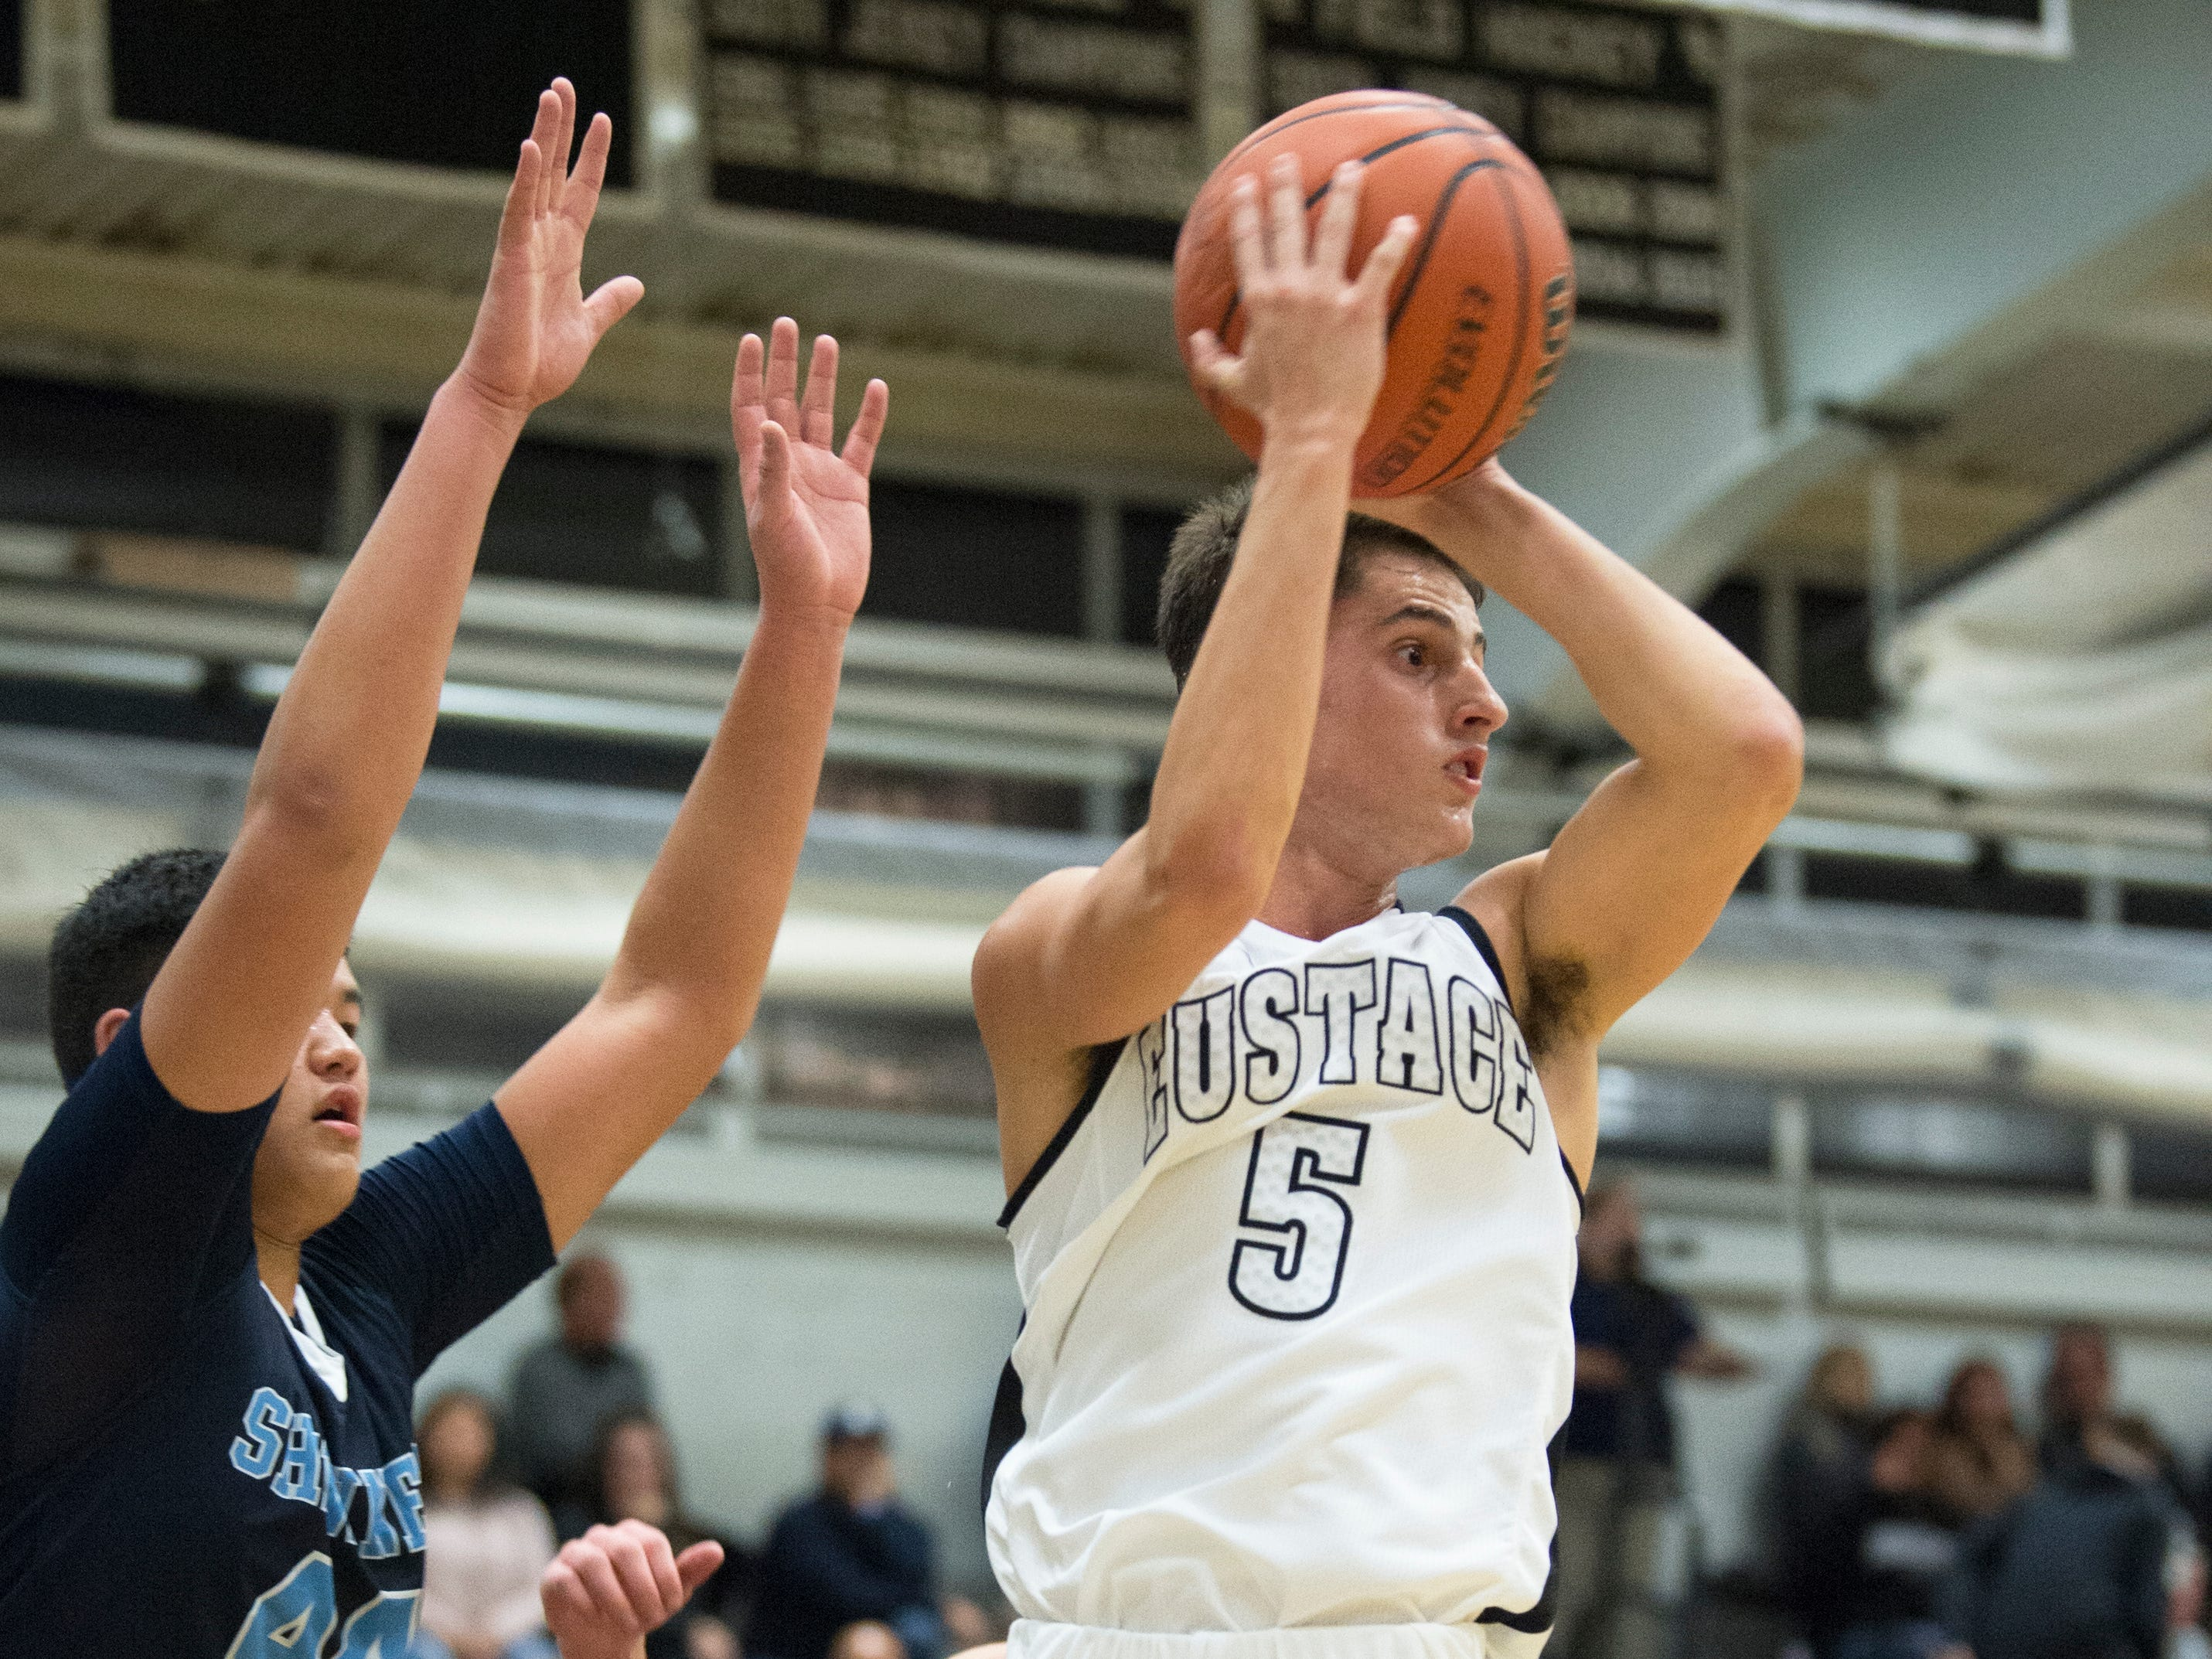 Bishop Eustace's David Cross passes the ball during the 1st quarter of the boys basketball game between Bishop Eustace and Shawnee played at Bishop Eustace High School in Pennsauken on Friday, December 14, 2018.  Bishop Eustace won, 51-35.